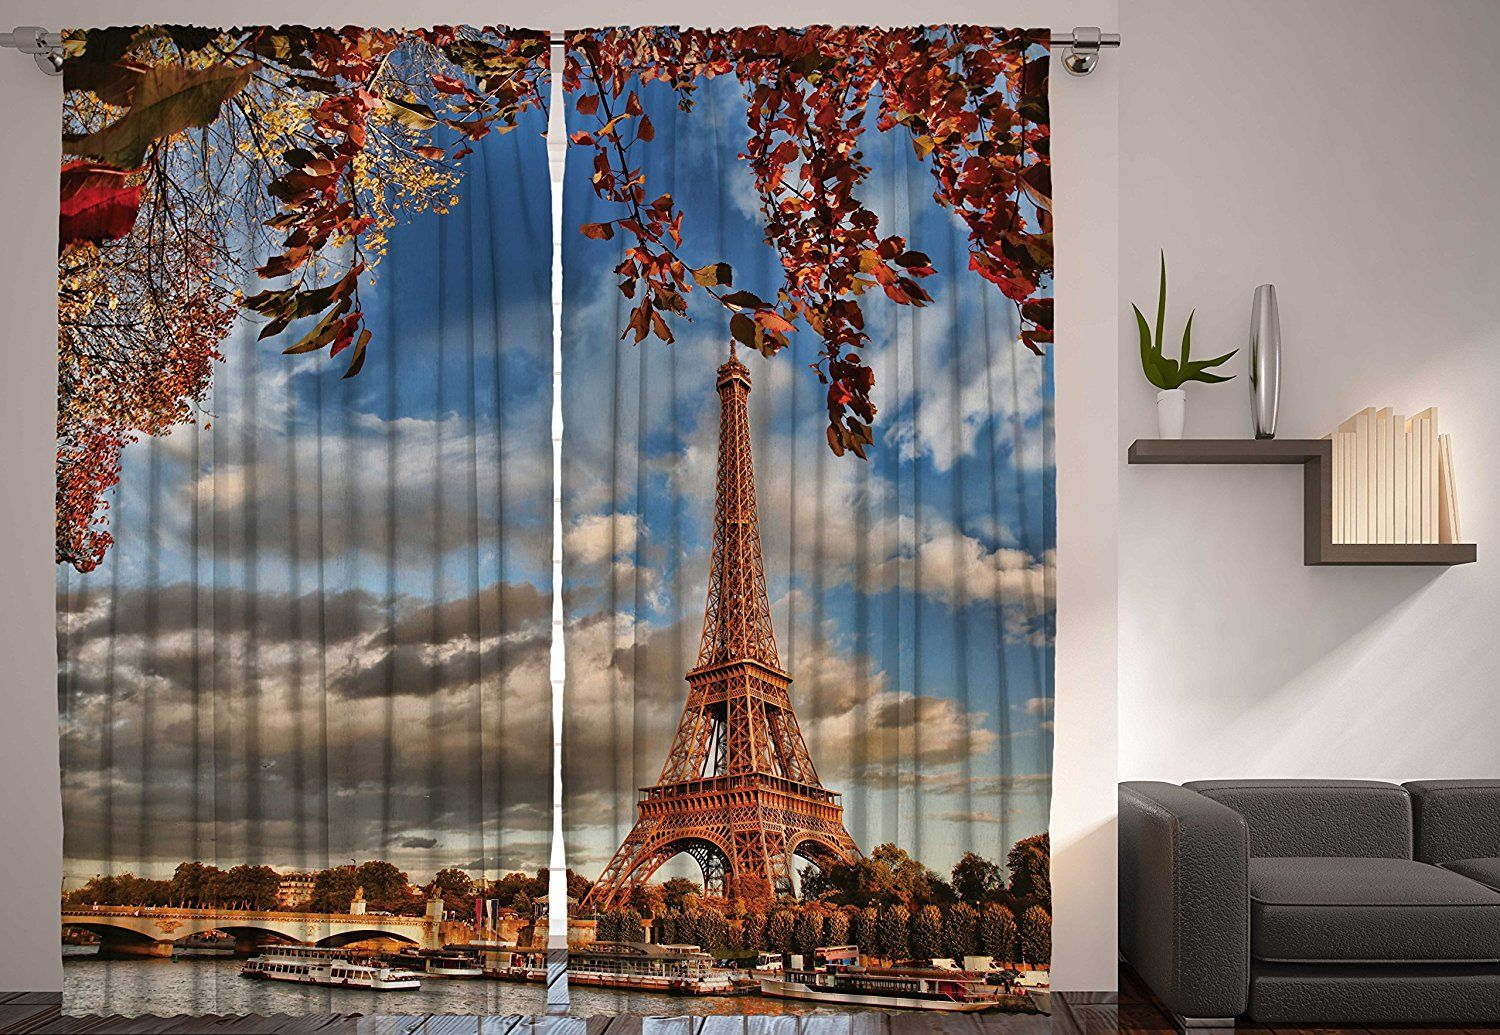 Paris Decor Eiffel Tower Fall View Falling Leaves River Bridge Bedroom Living Room Kids Youth Room Curtains 2 Panels Cityscape Decorations for The Home Machine Washable, 108x90 Brown Blue Gray >>> Read more at the image link. (This is an affiliate link) #WindowTreatments